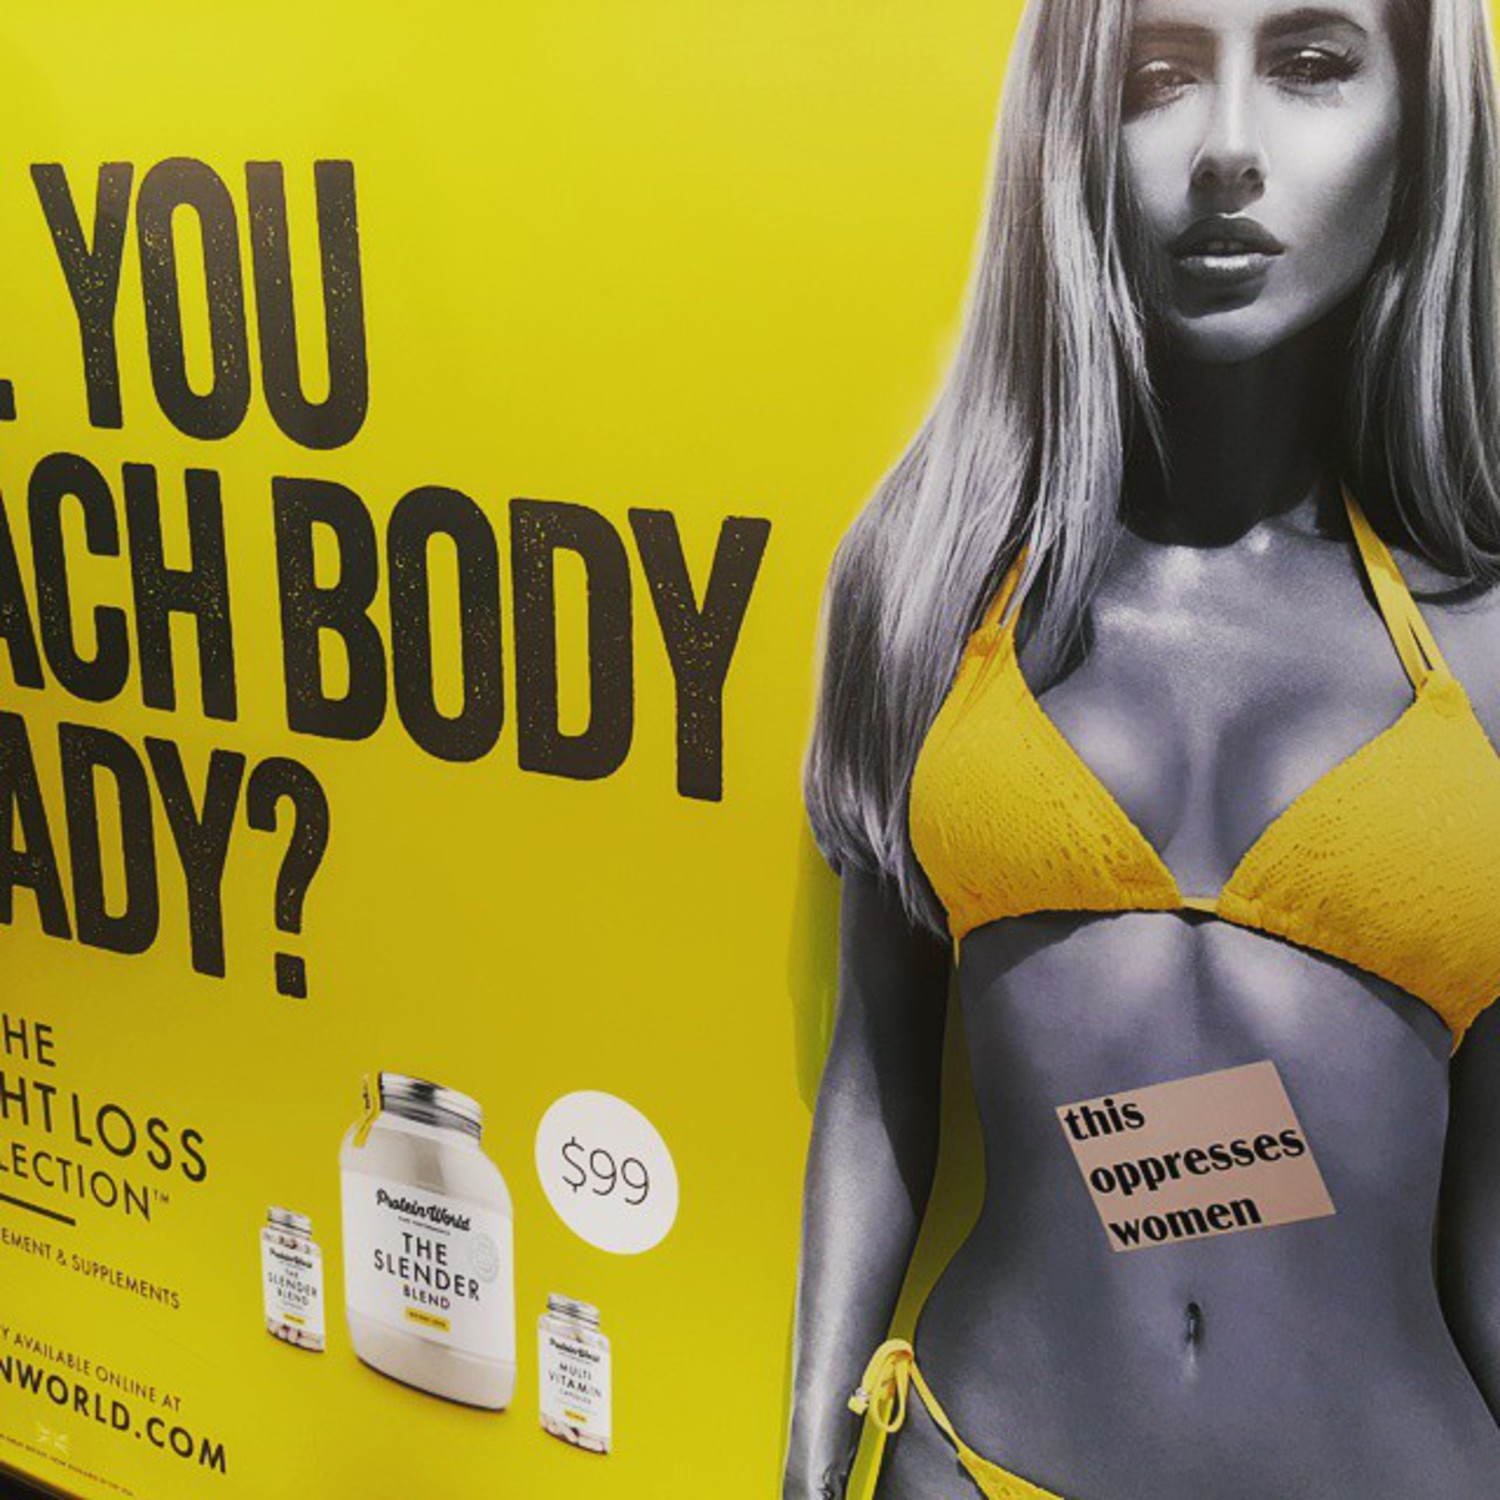 No one looks like that. Not even her. #thisoppresseswomen #beachbody #bikinibody #beach #bikini #women #feminism